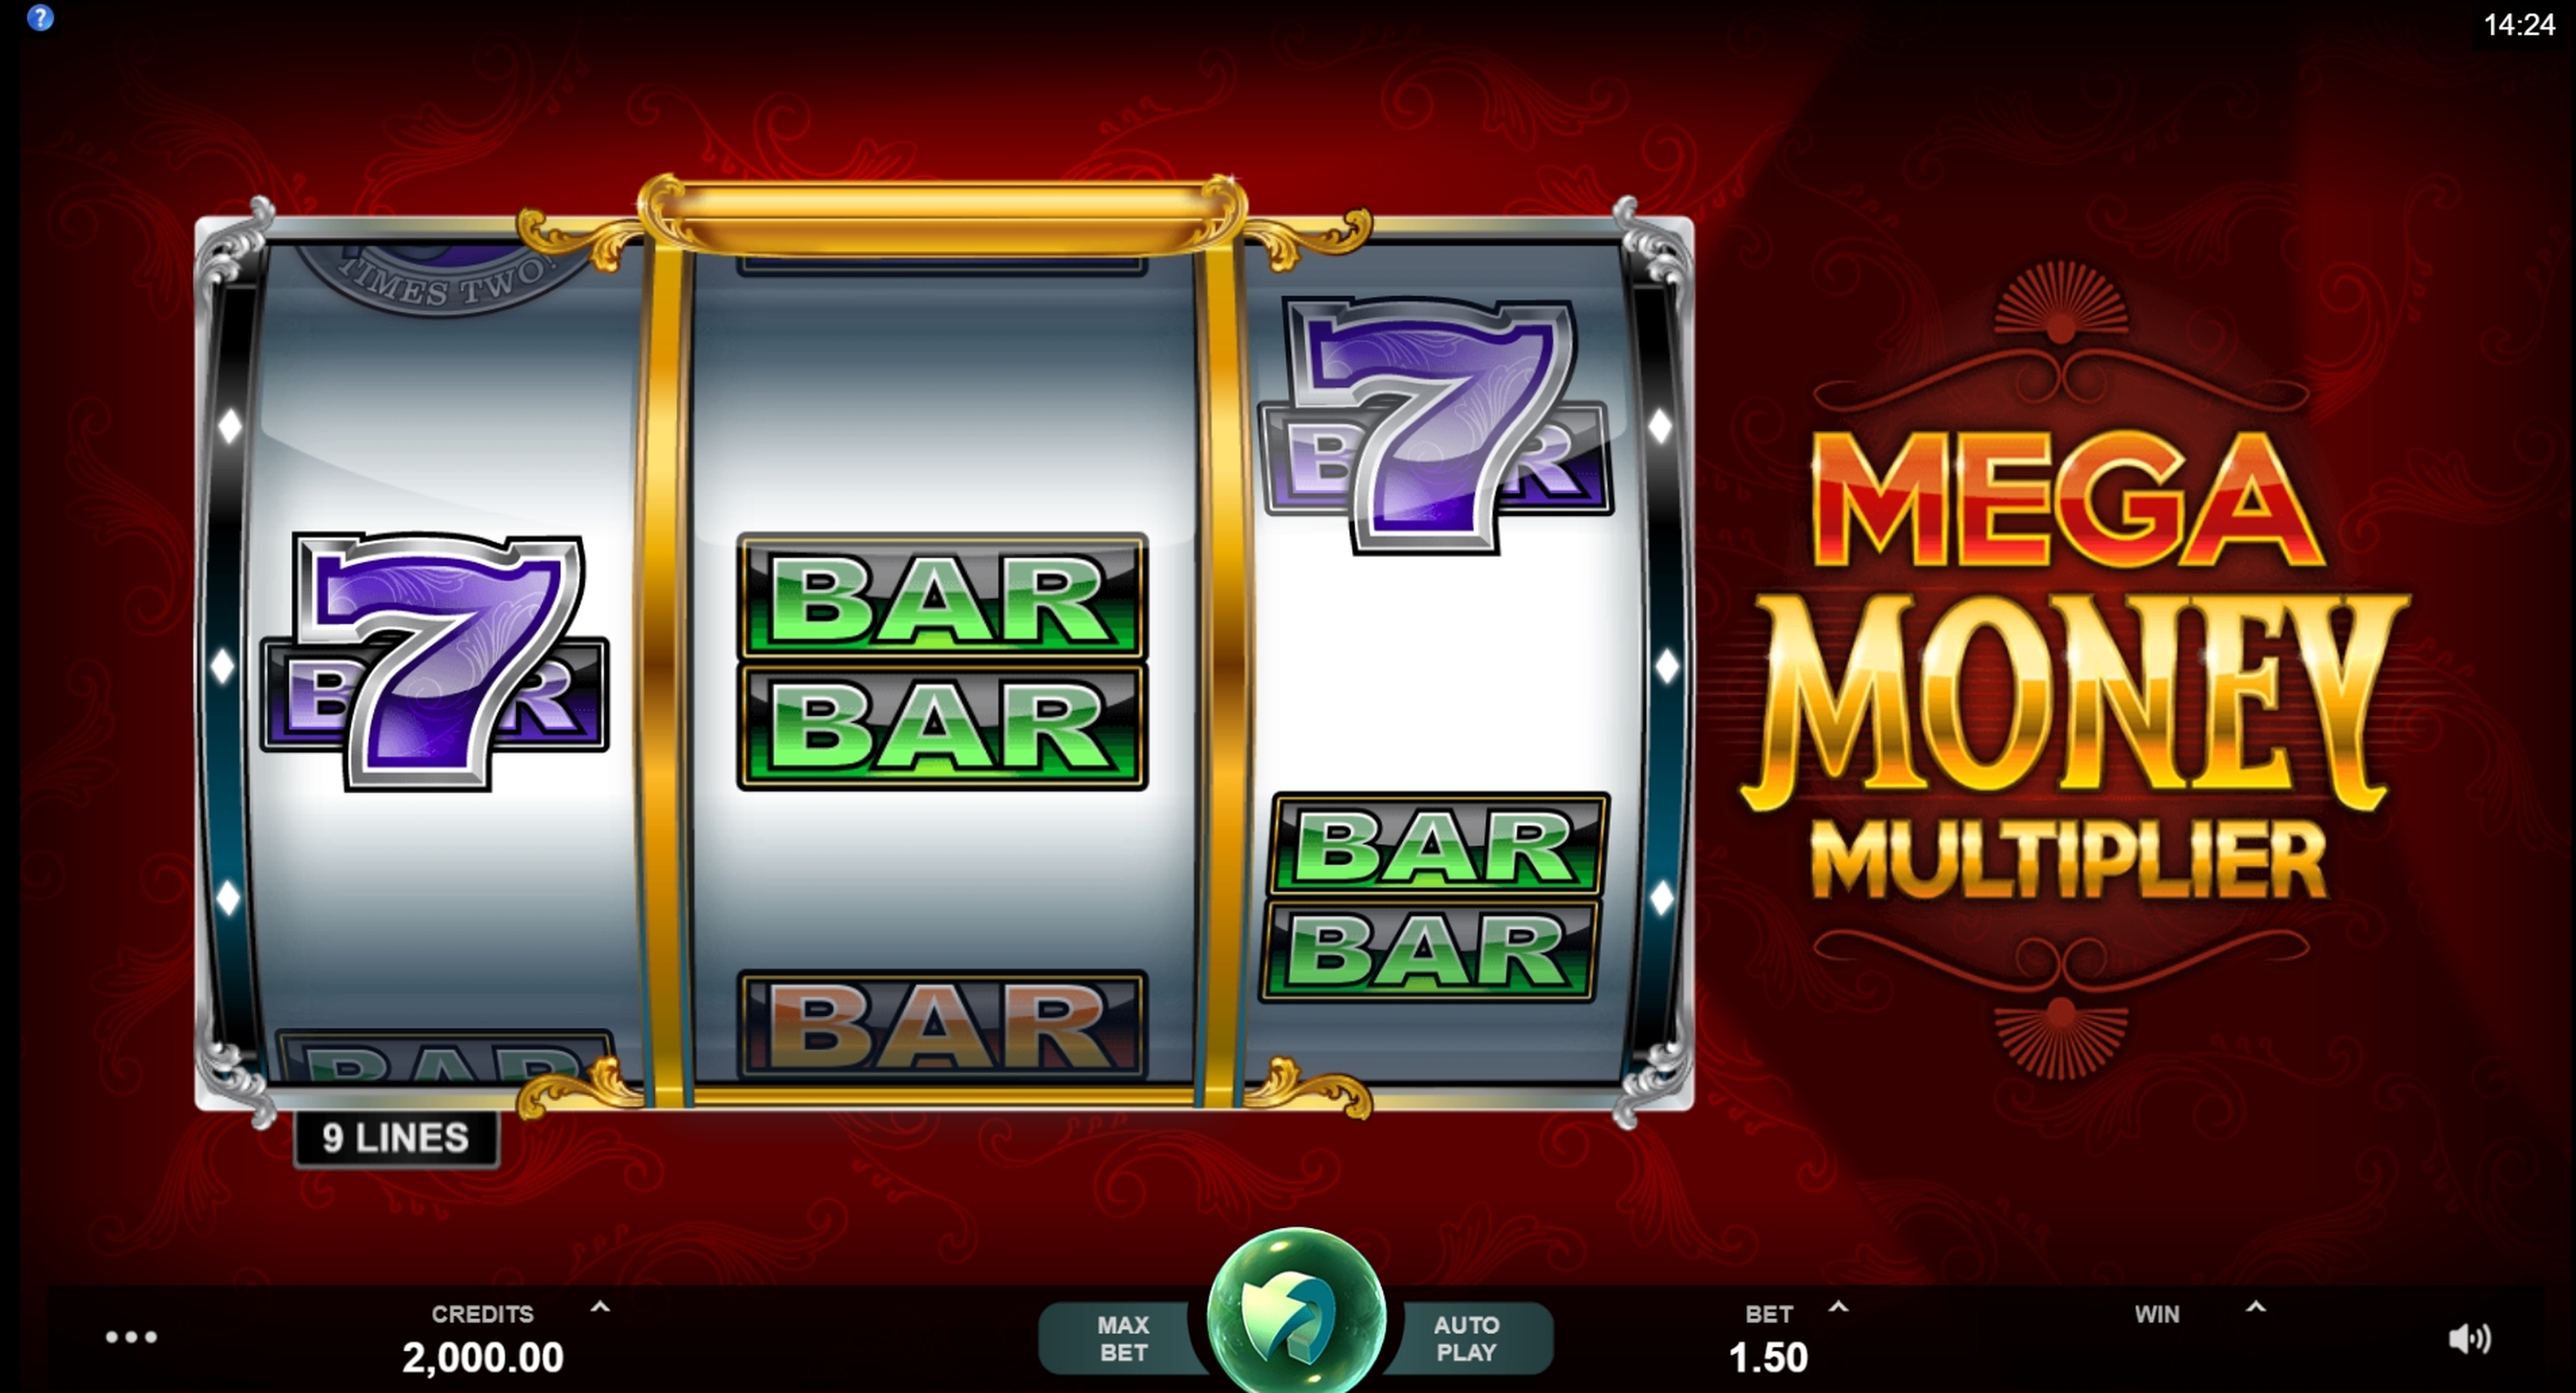 Reels in Mega Money Multiplier Slot Game by MahiGaming